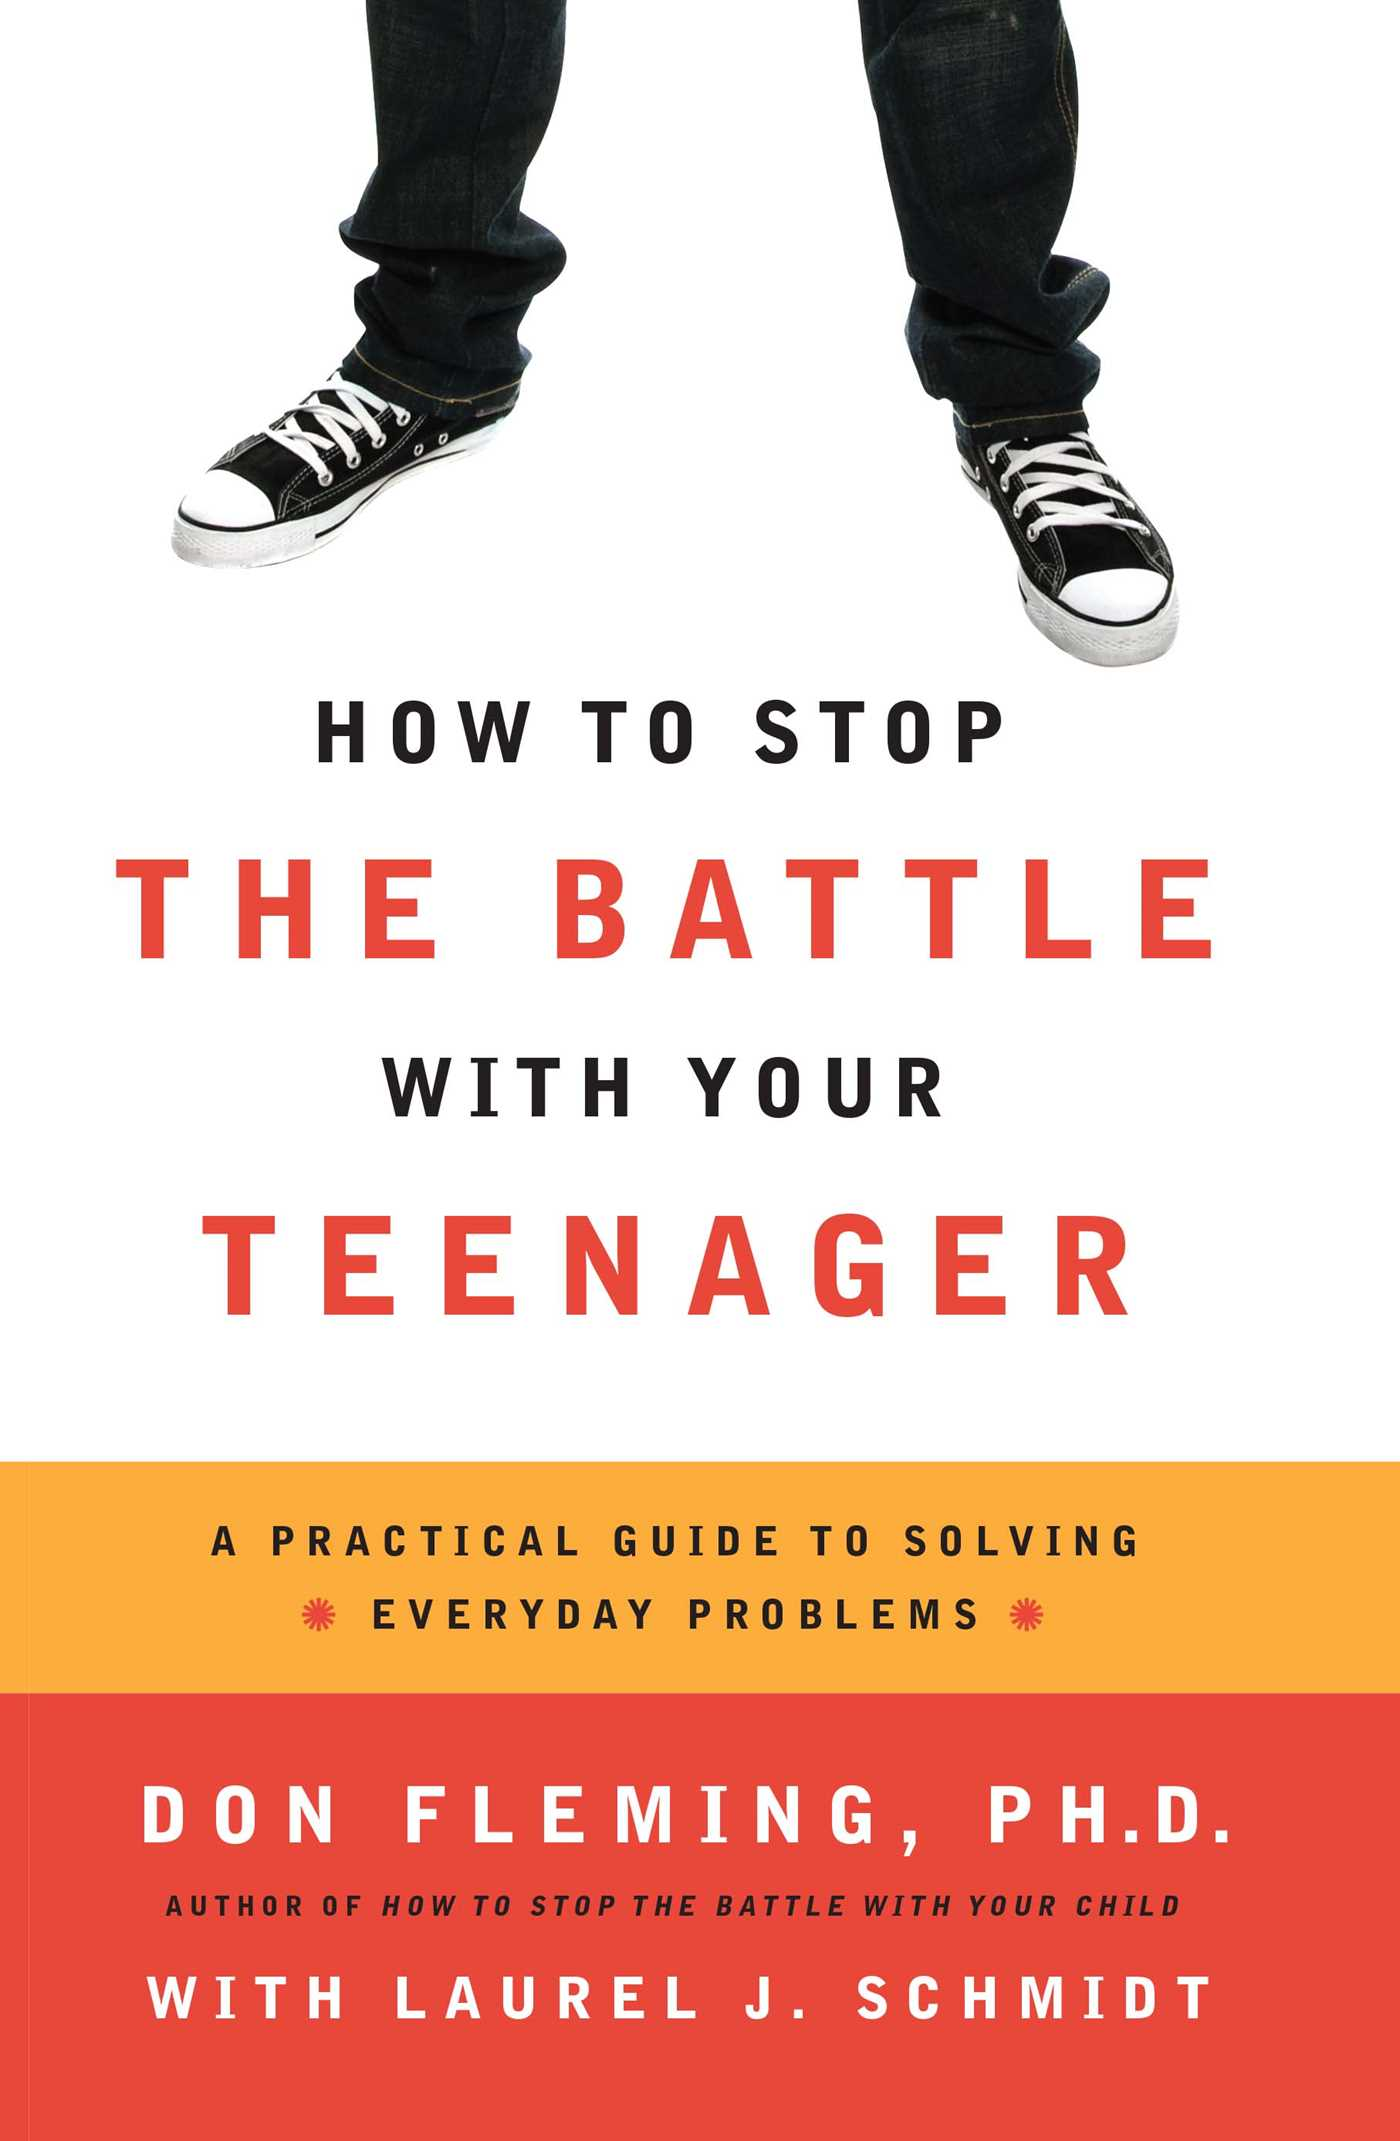 How-to-stop-the-battle-with-your-teenager-9780671763480_hr